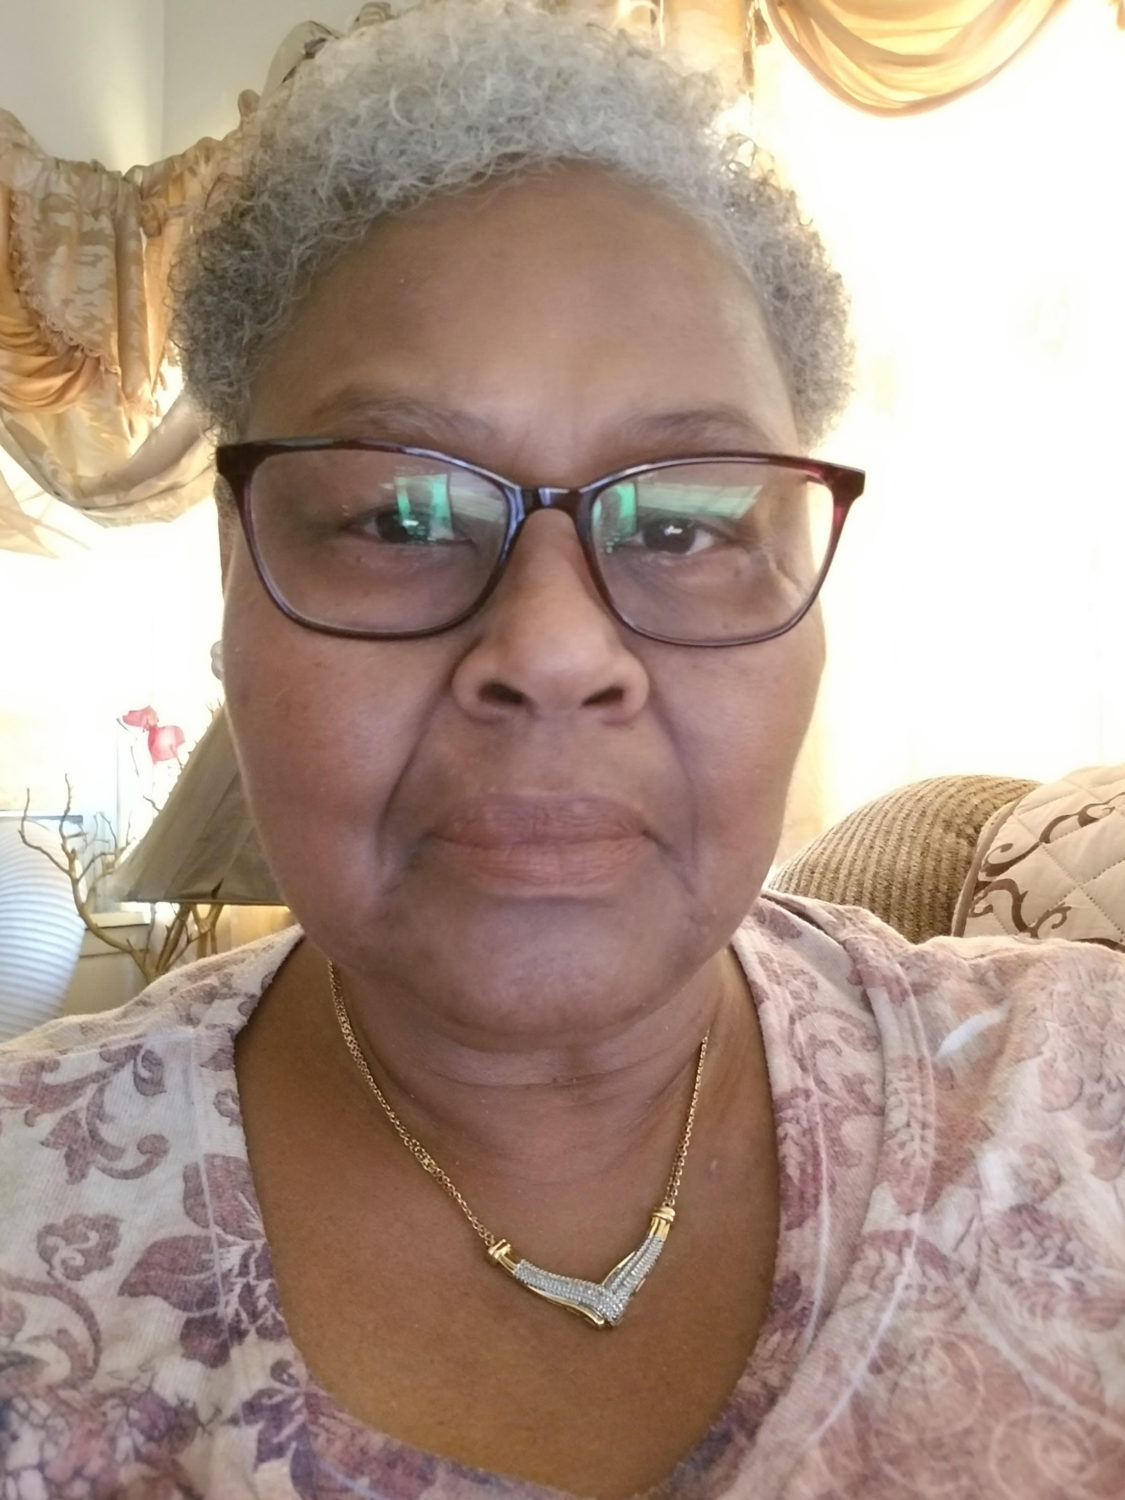 Mary-Barbee, Mother calls for clemency: 'My sons were sentenced with time to serve, not a death sentence', Behind Enemy Lines